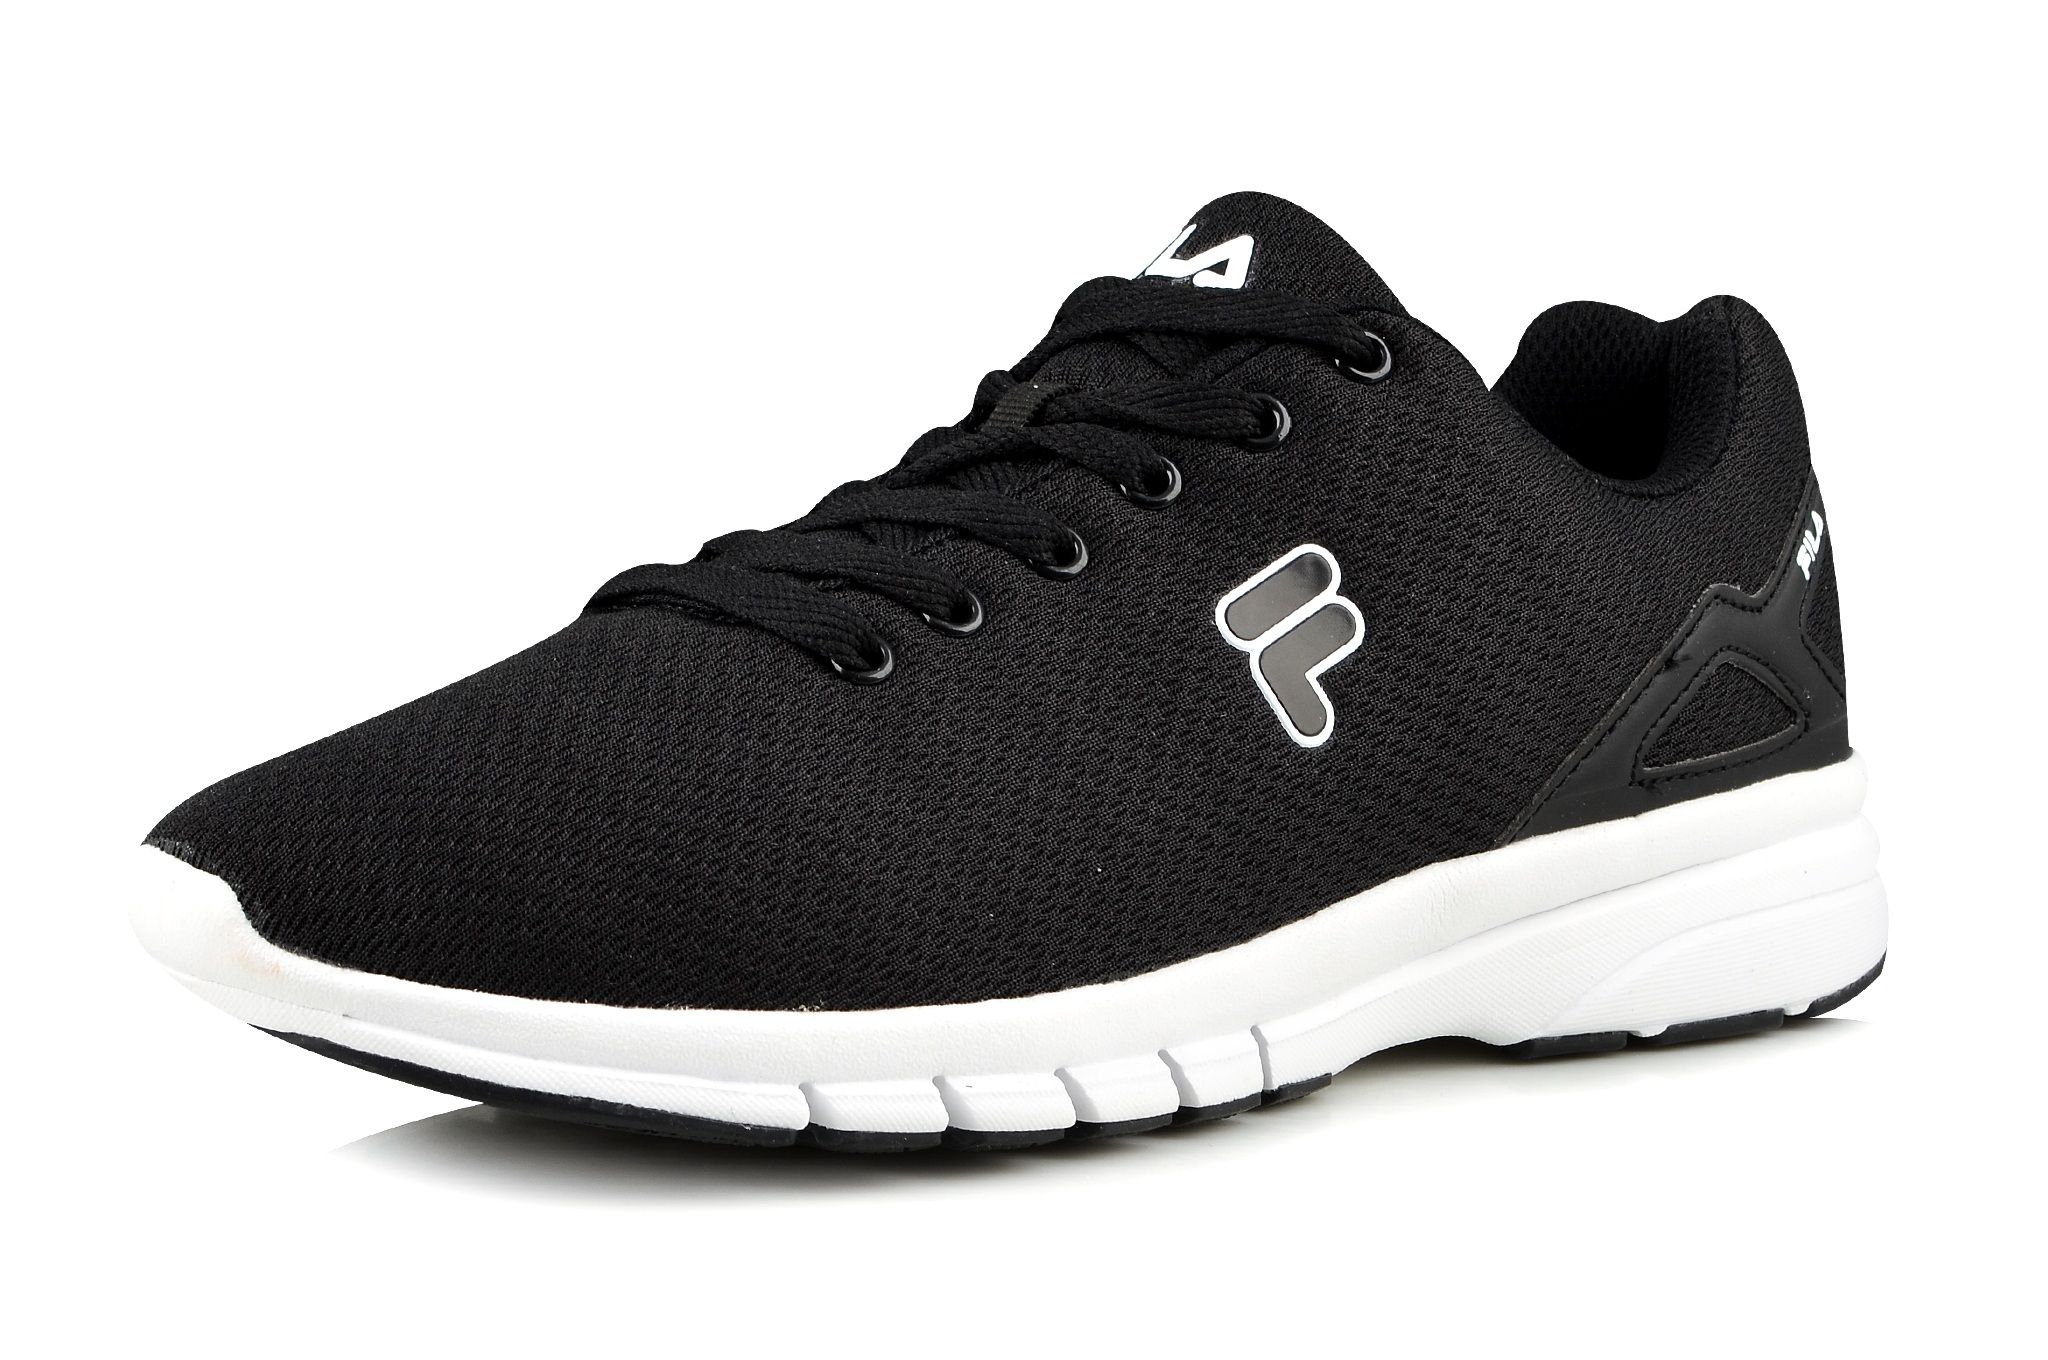 FILA RUNNING SHOES - PriveSports - Cyprus online shop